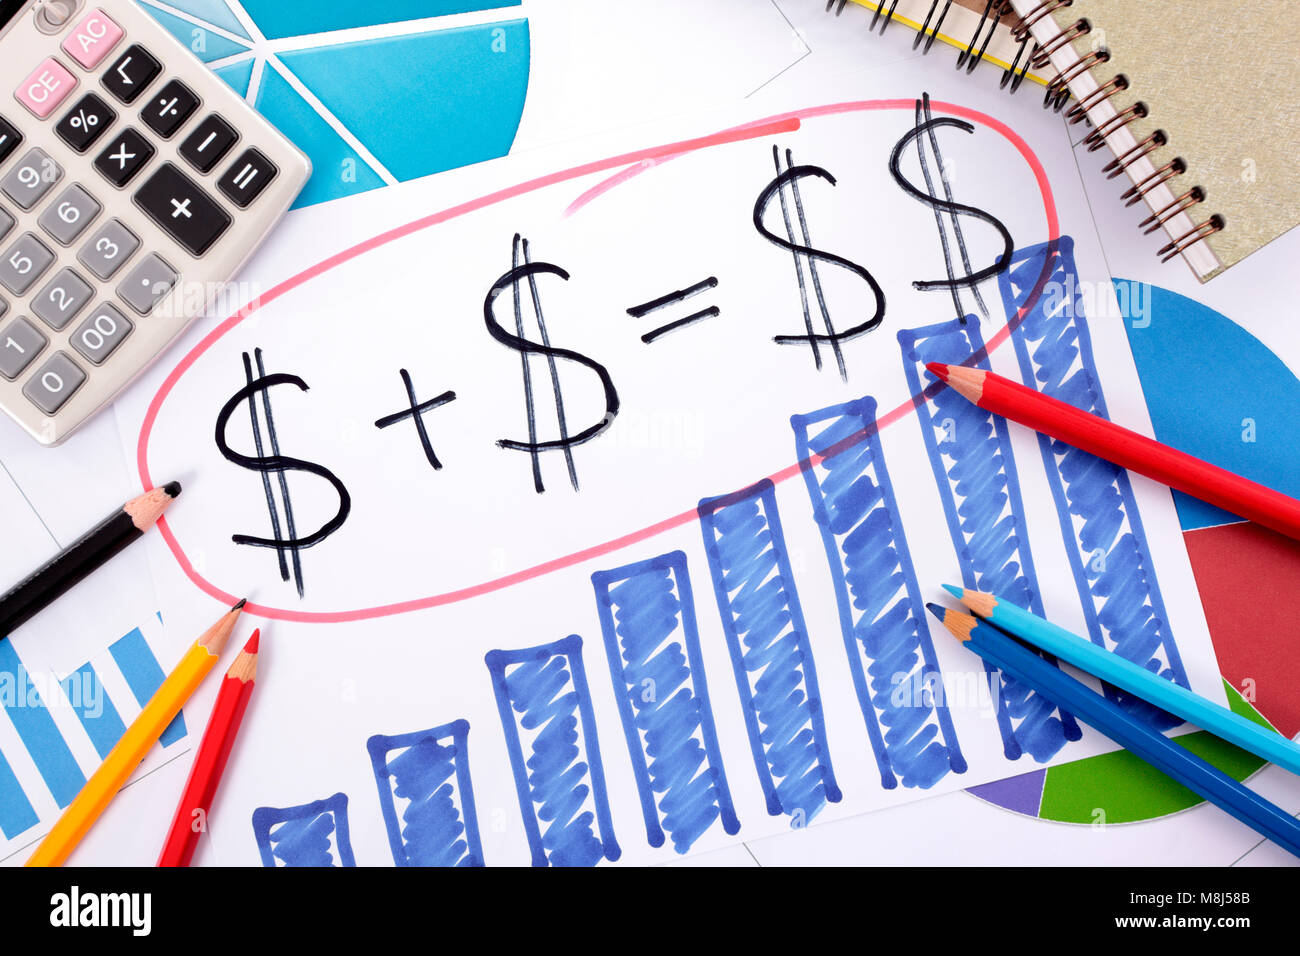 Simple savings or retirement formula written on a hand drawn bar simple savings or retirement formula written on a hand drawn bar chart surrounded by calculator books and pencils ccuart Image collections